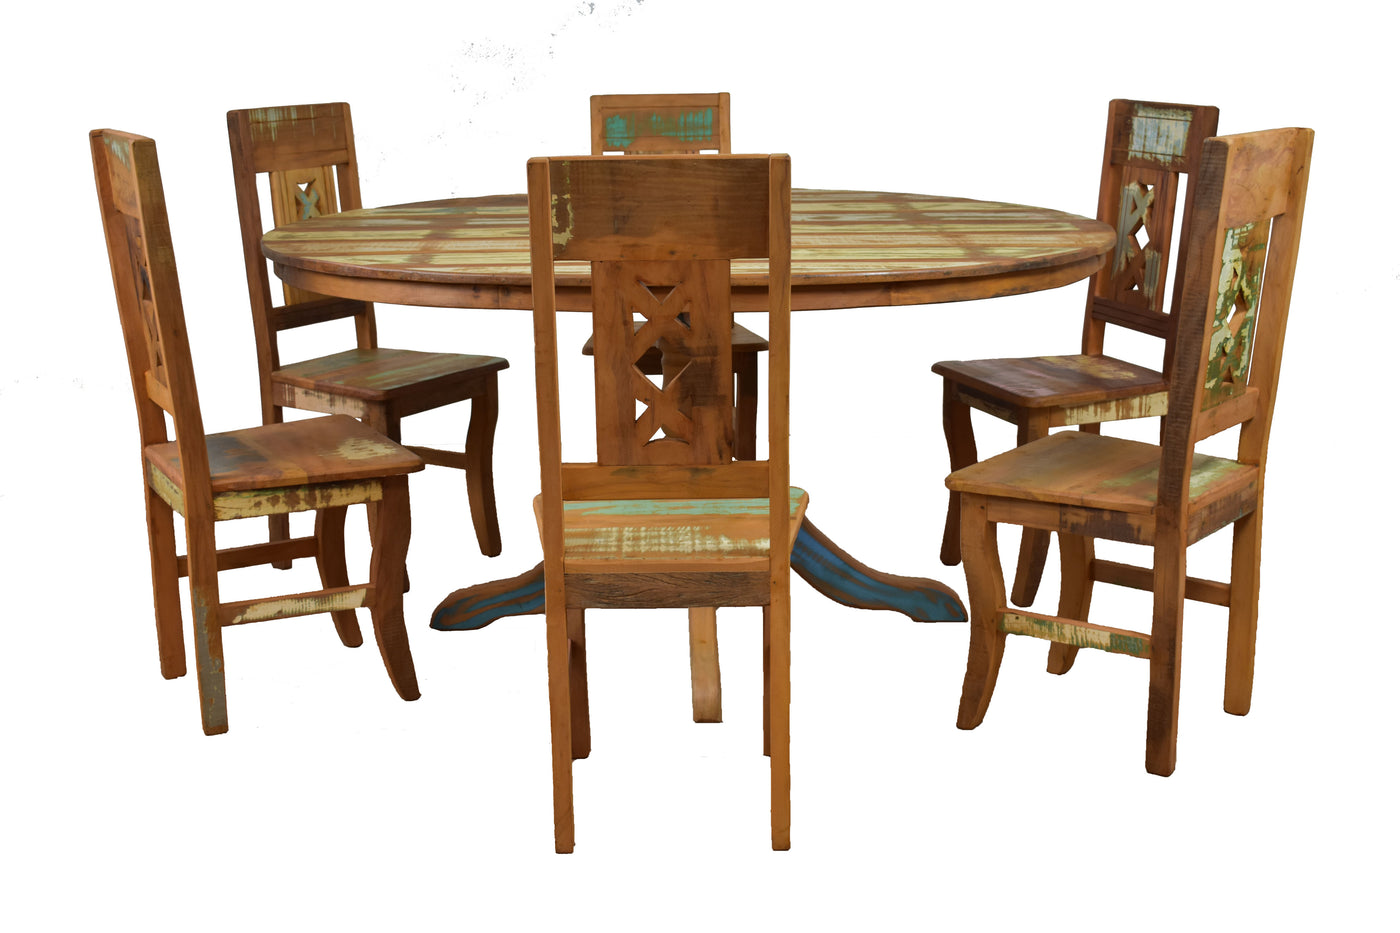 Incroyable Reclaimed Wood Round Dining Set, Round Dining Set, Reclaimed Wood Dining  Table, Round ...